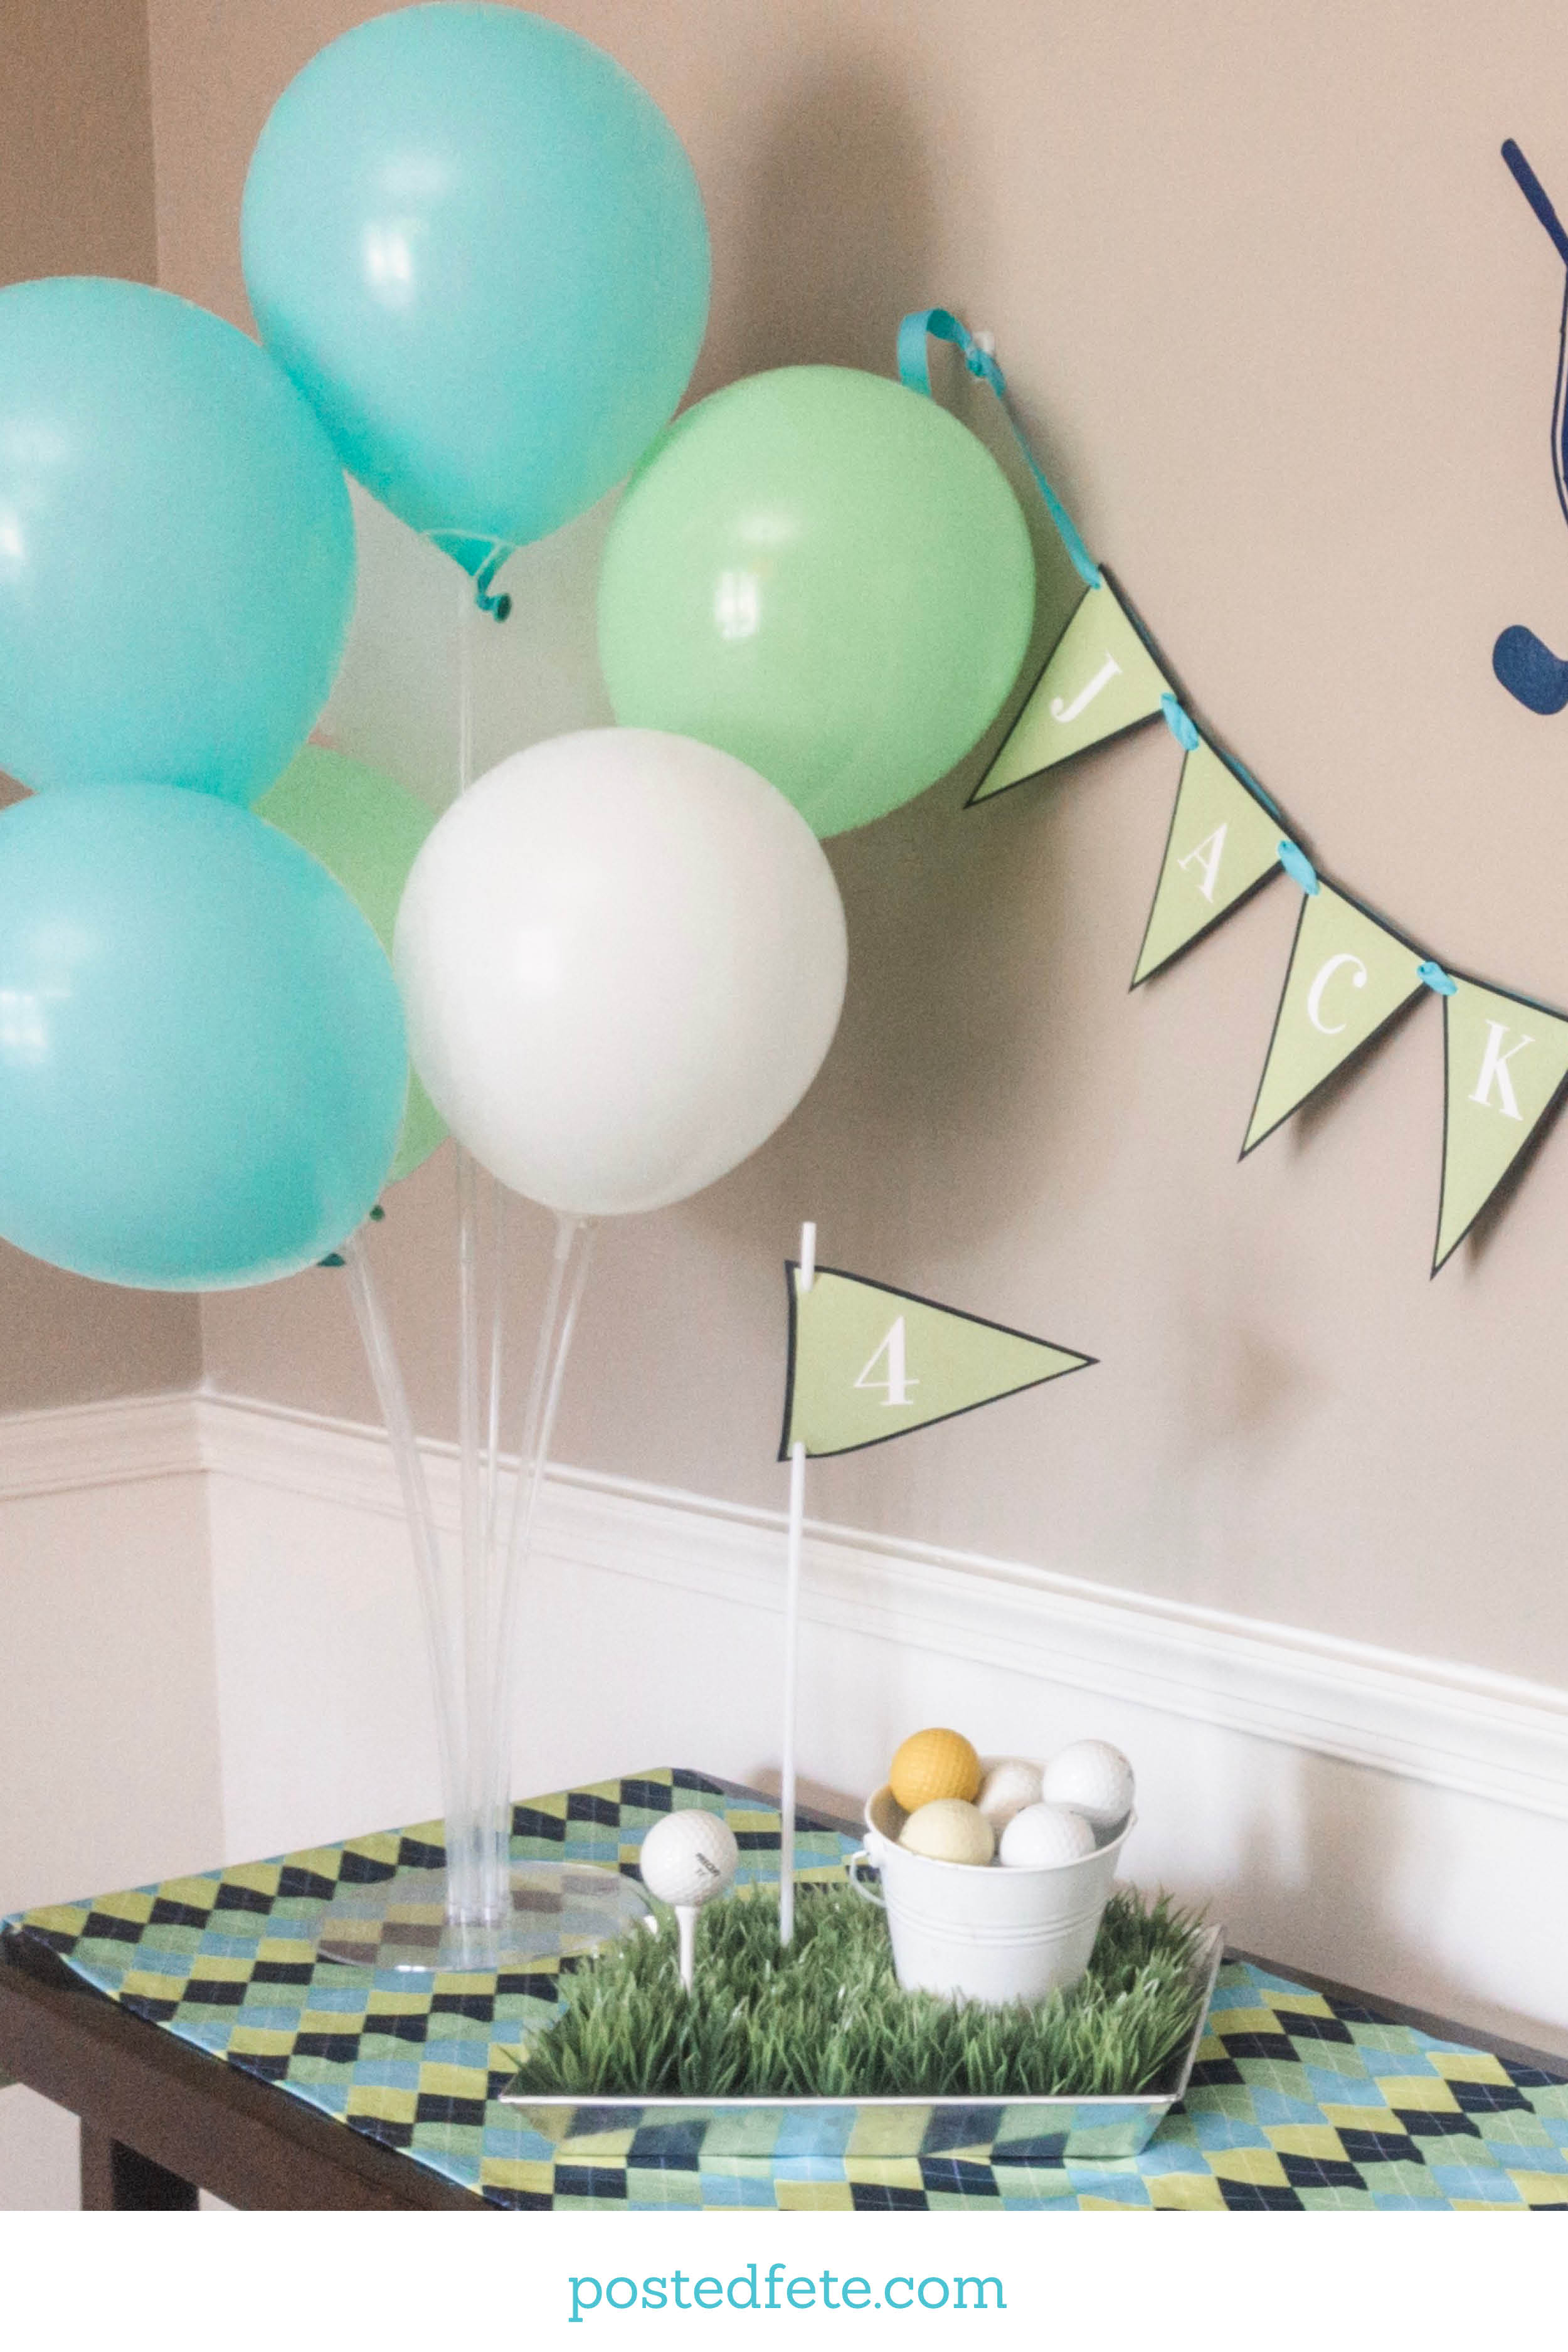 Golf Party Theme Decorations and Ideas - Balloon Sticks and stand decoration, argyle table runner and golf themed centerpiece idea | By Posted Fete | #holeinone